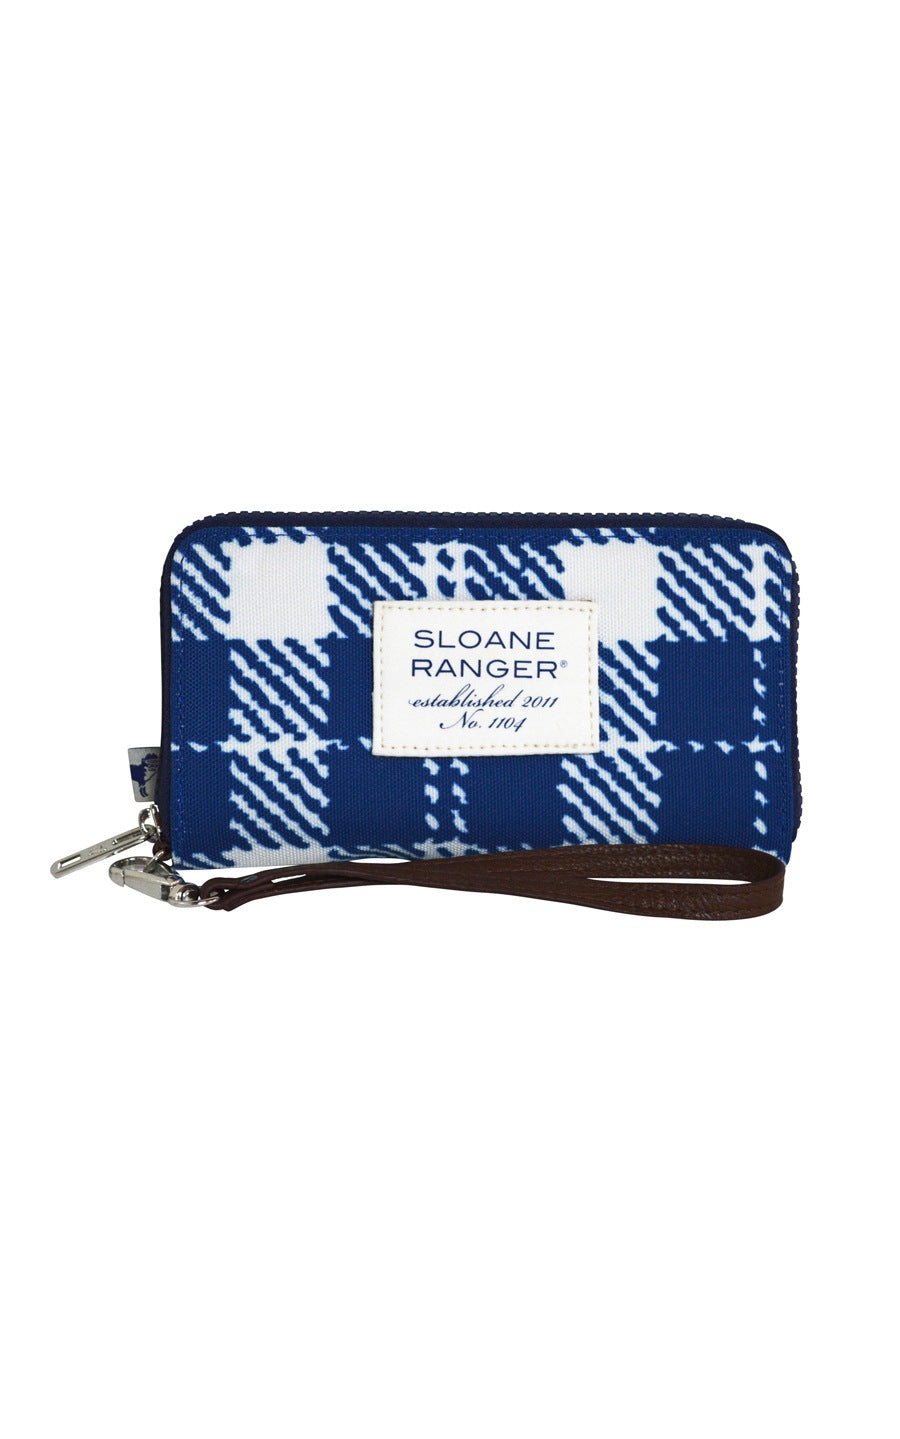 classic check smartphone wallet.